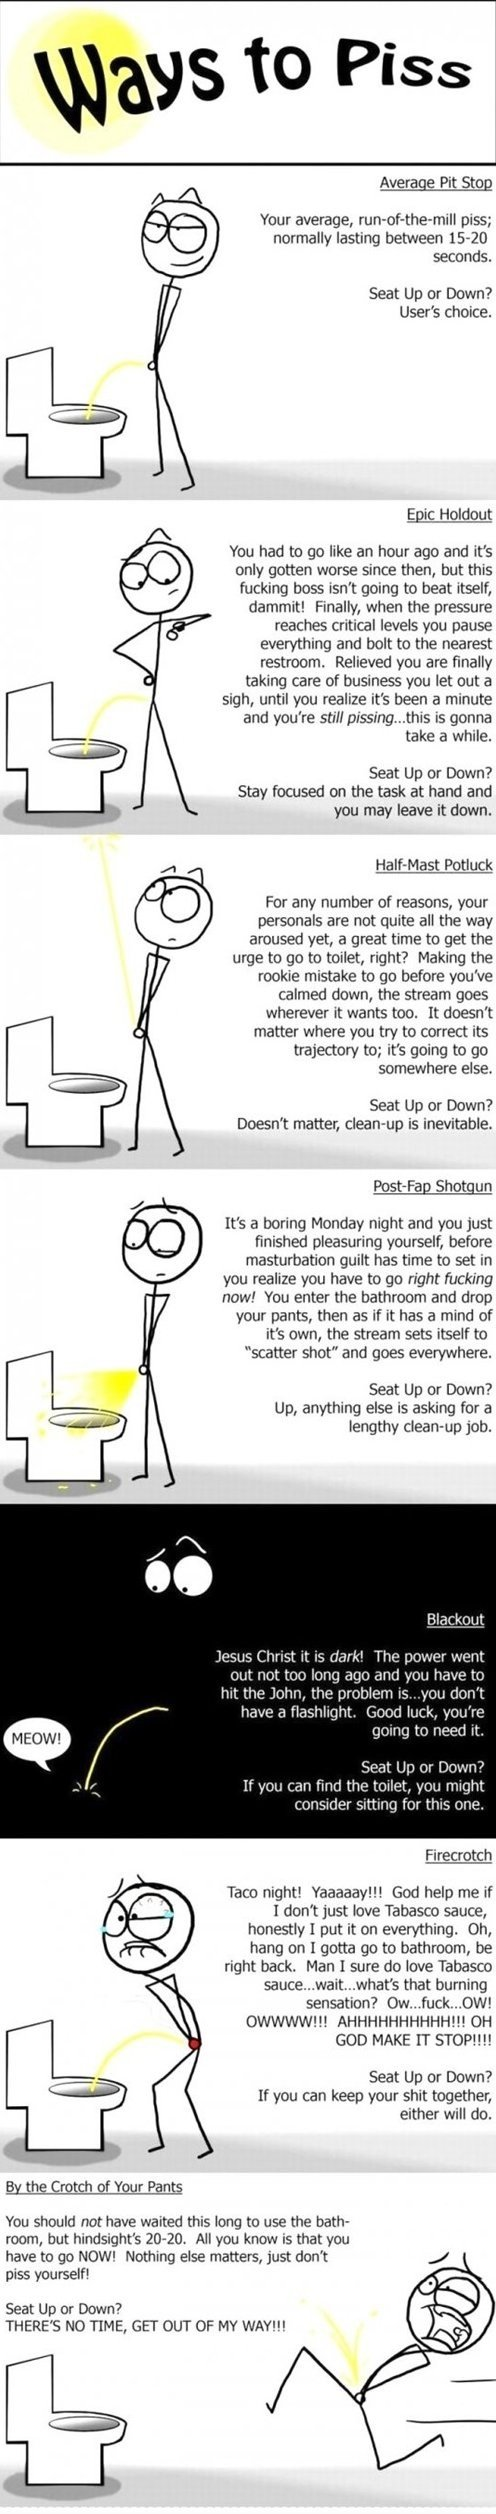 a toilets life and times. pissing 101 this is not my content i found and reposted...yes...i am reposting scum...but i do not think this has been on funnyjunk ye